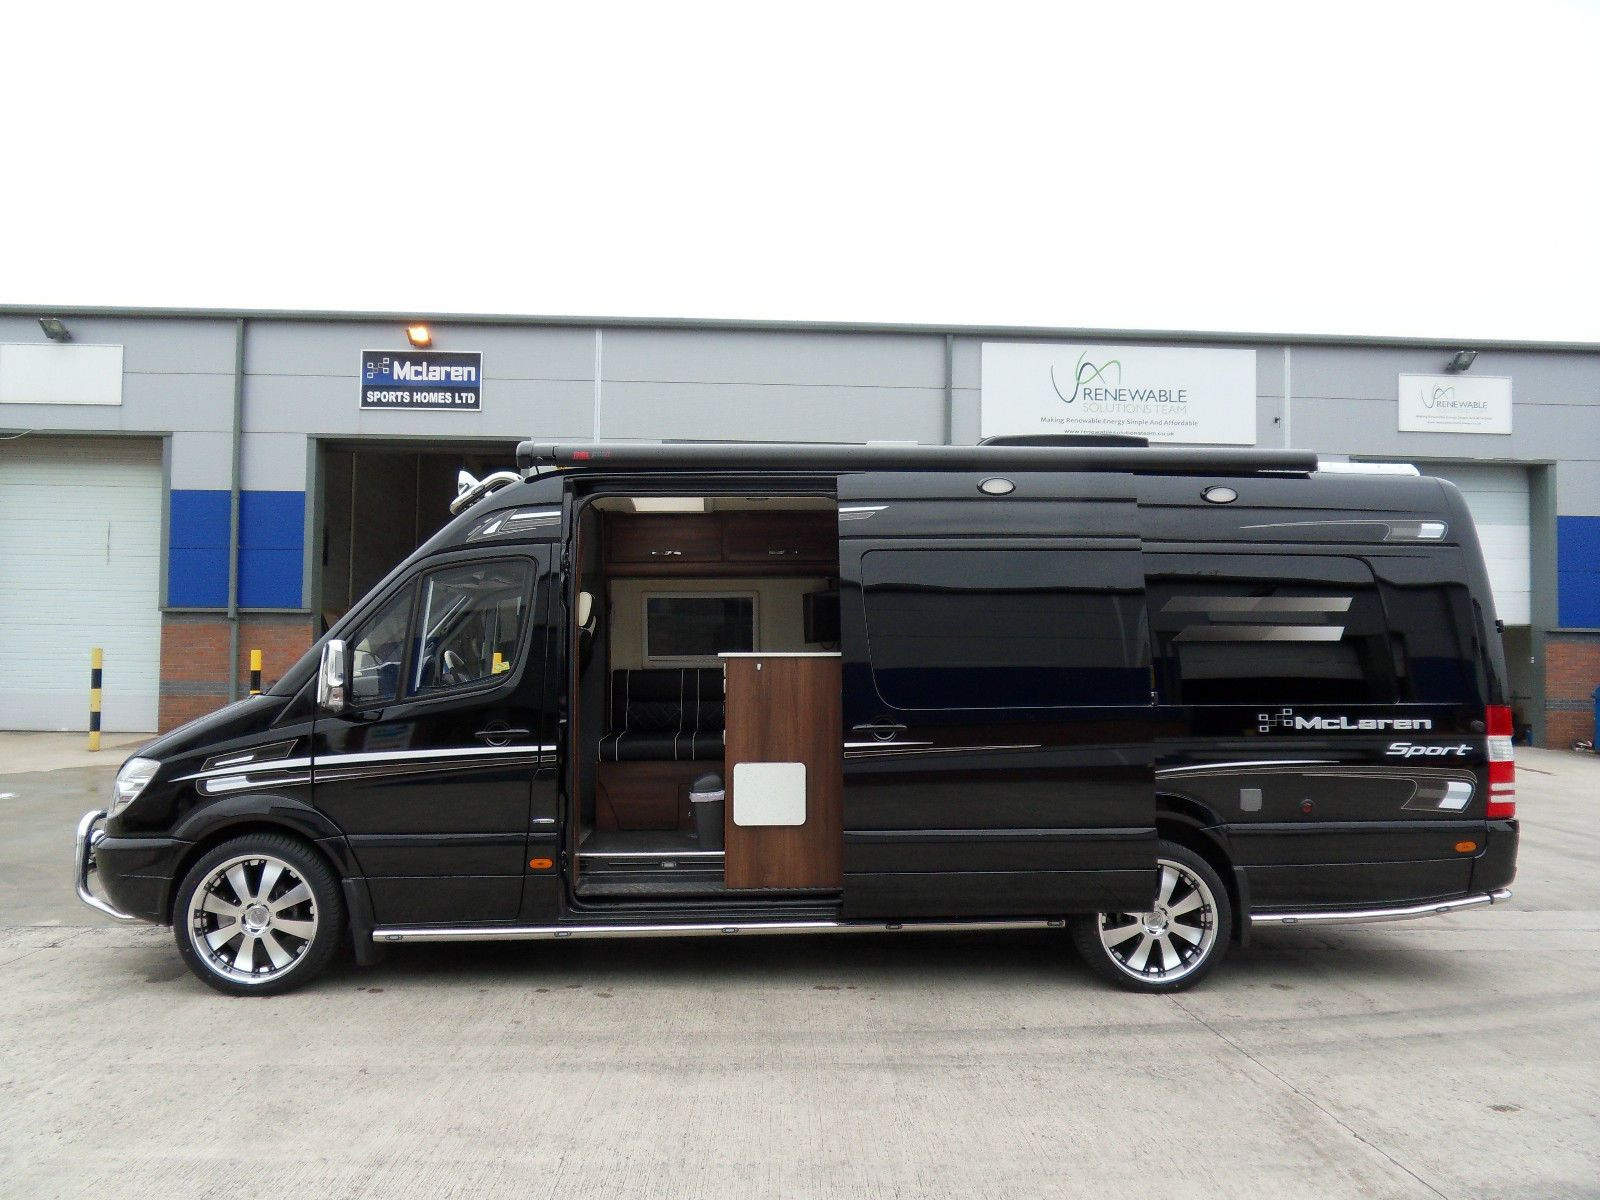 Mclaren sporthome race van mercedes sprinter vw crafter for Mercedes benz conversion van